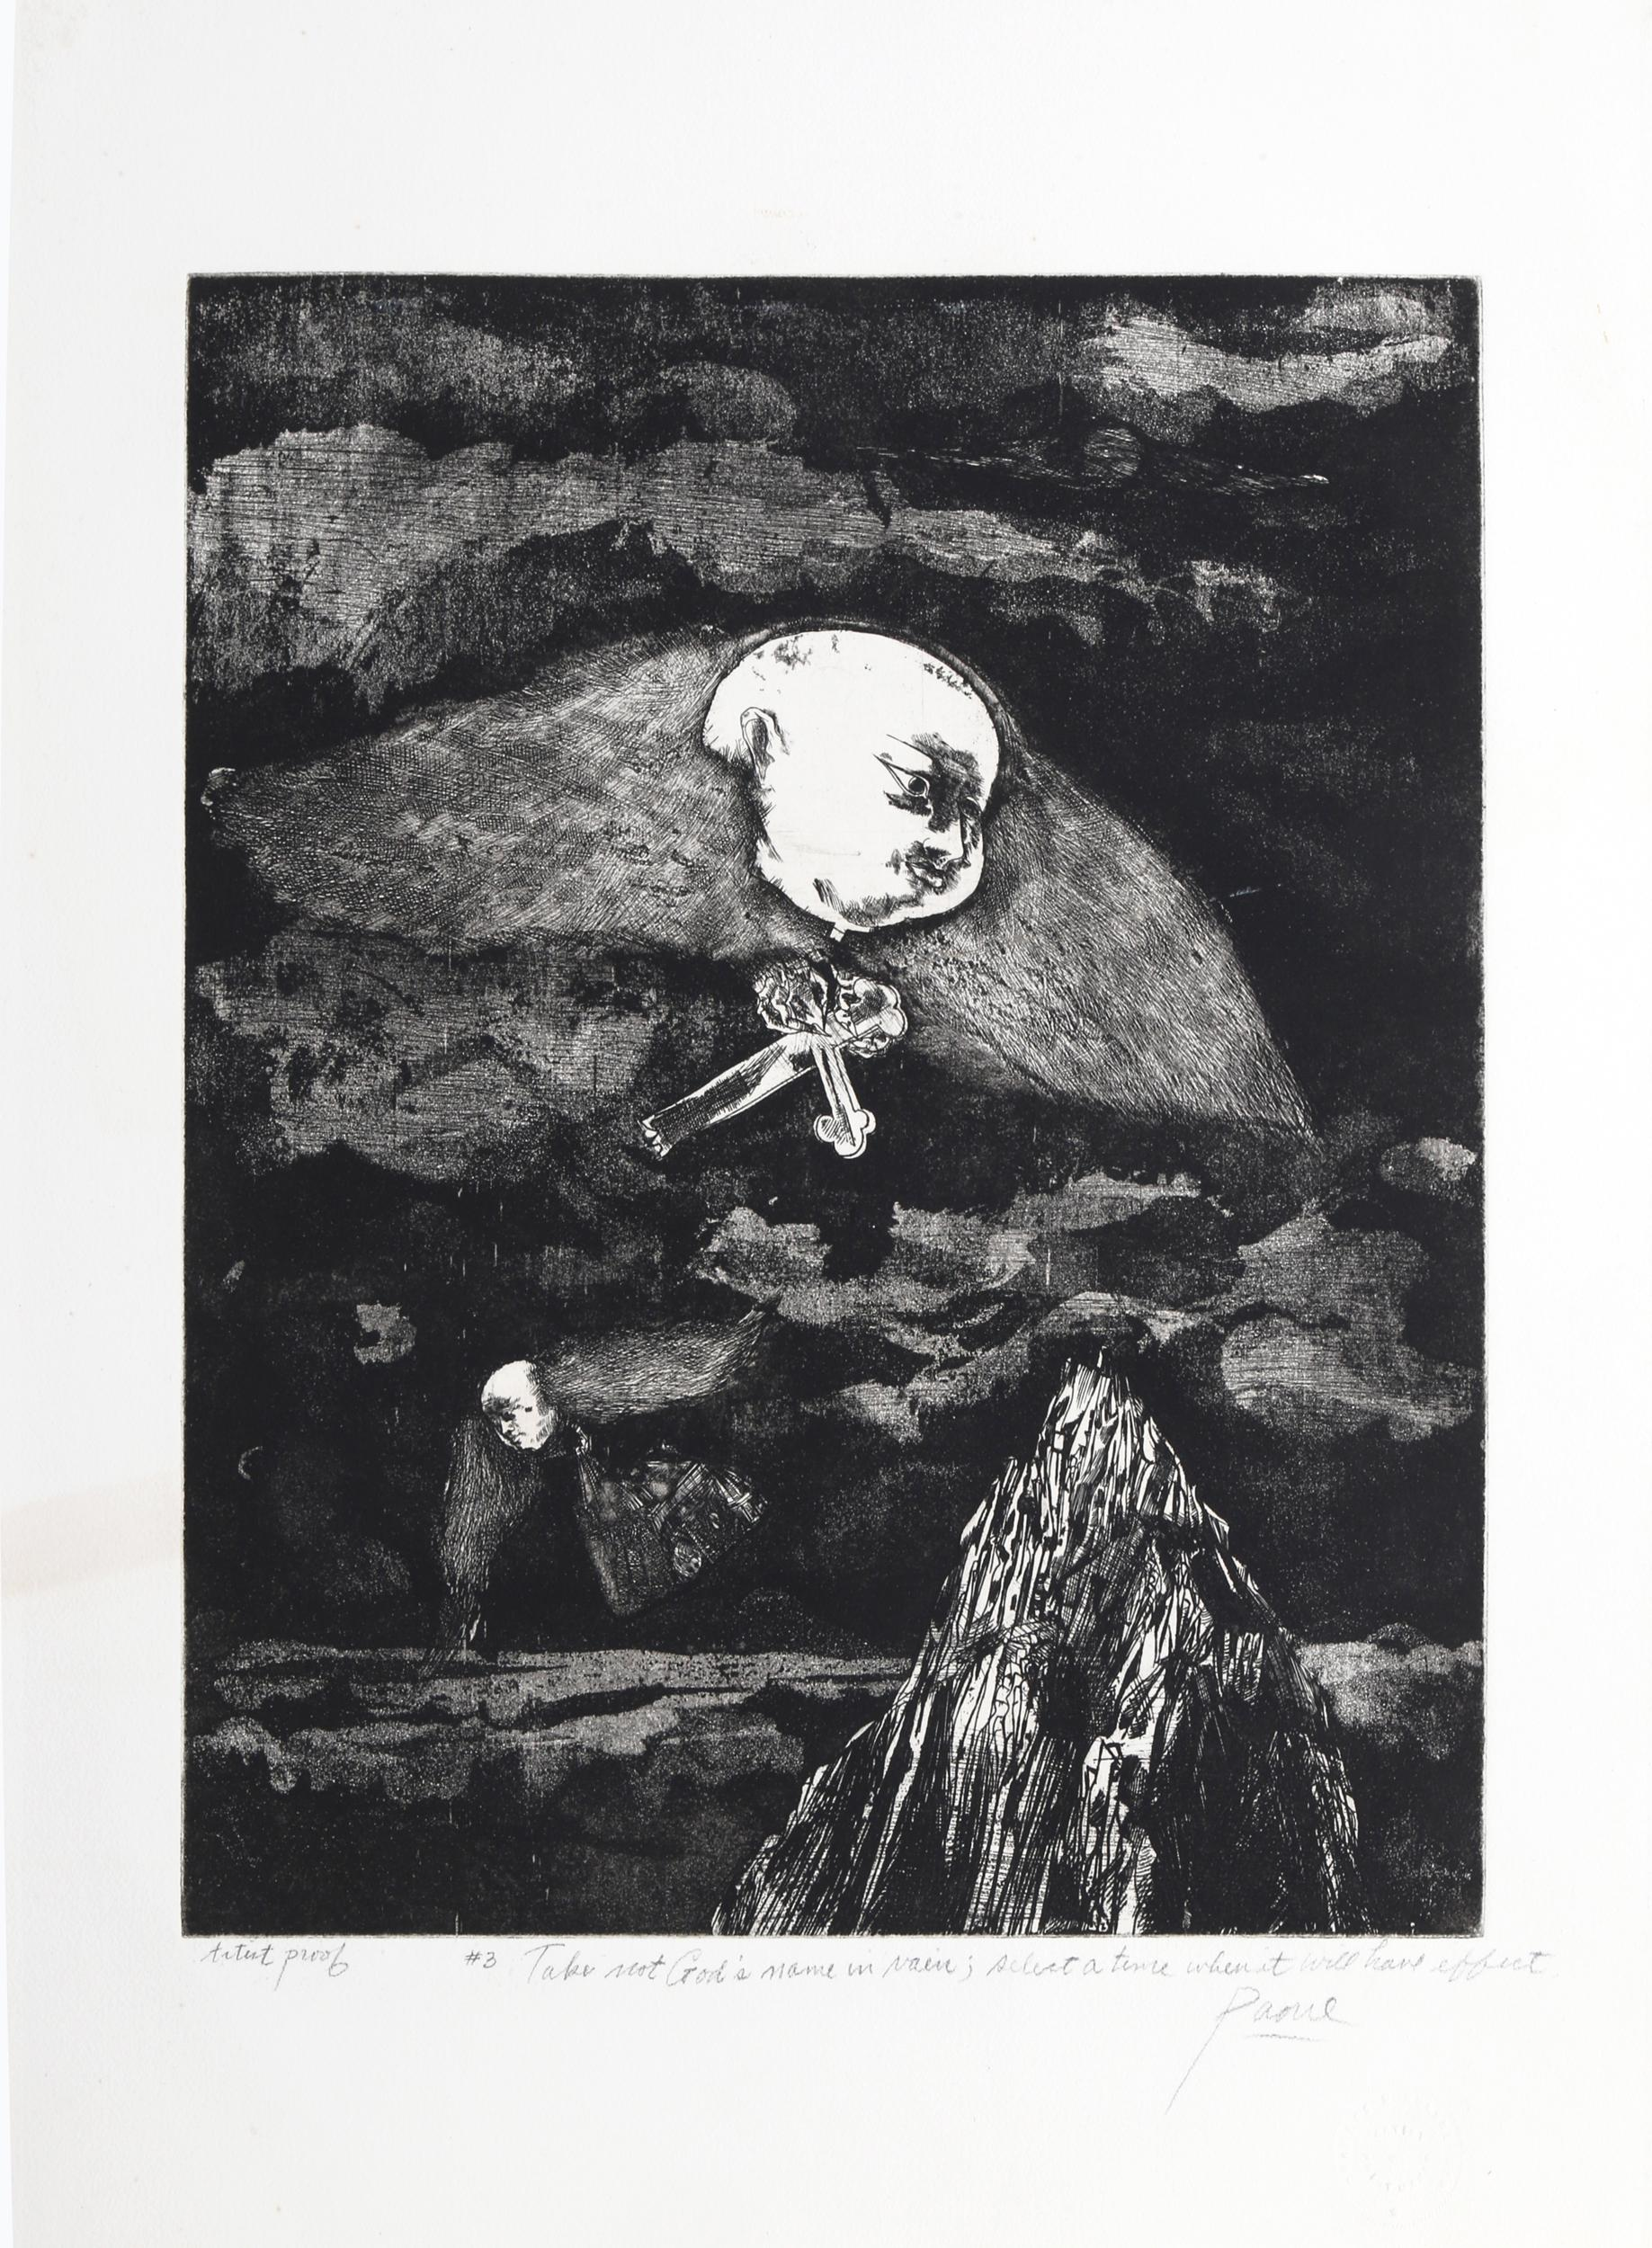 Peter Paone, Take Not God's Name in Vain Select a Time When It Will Have Effect, Etching